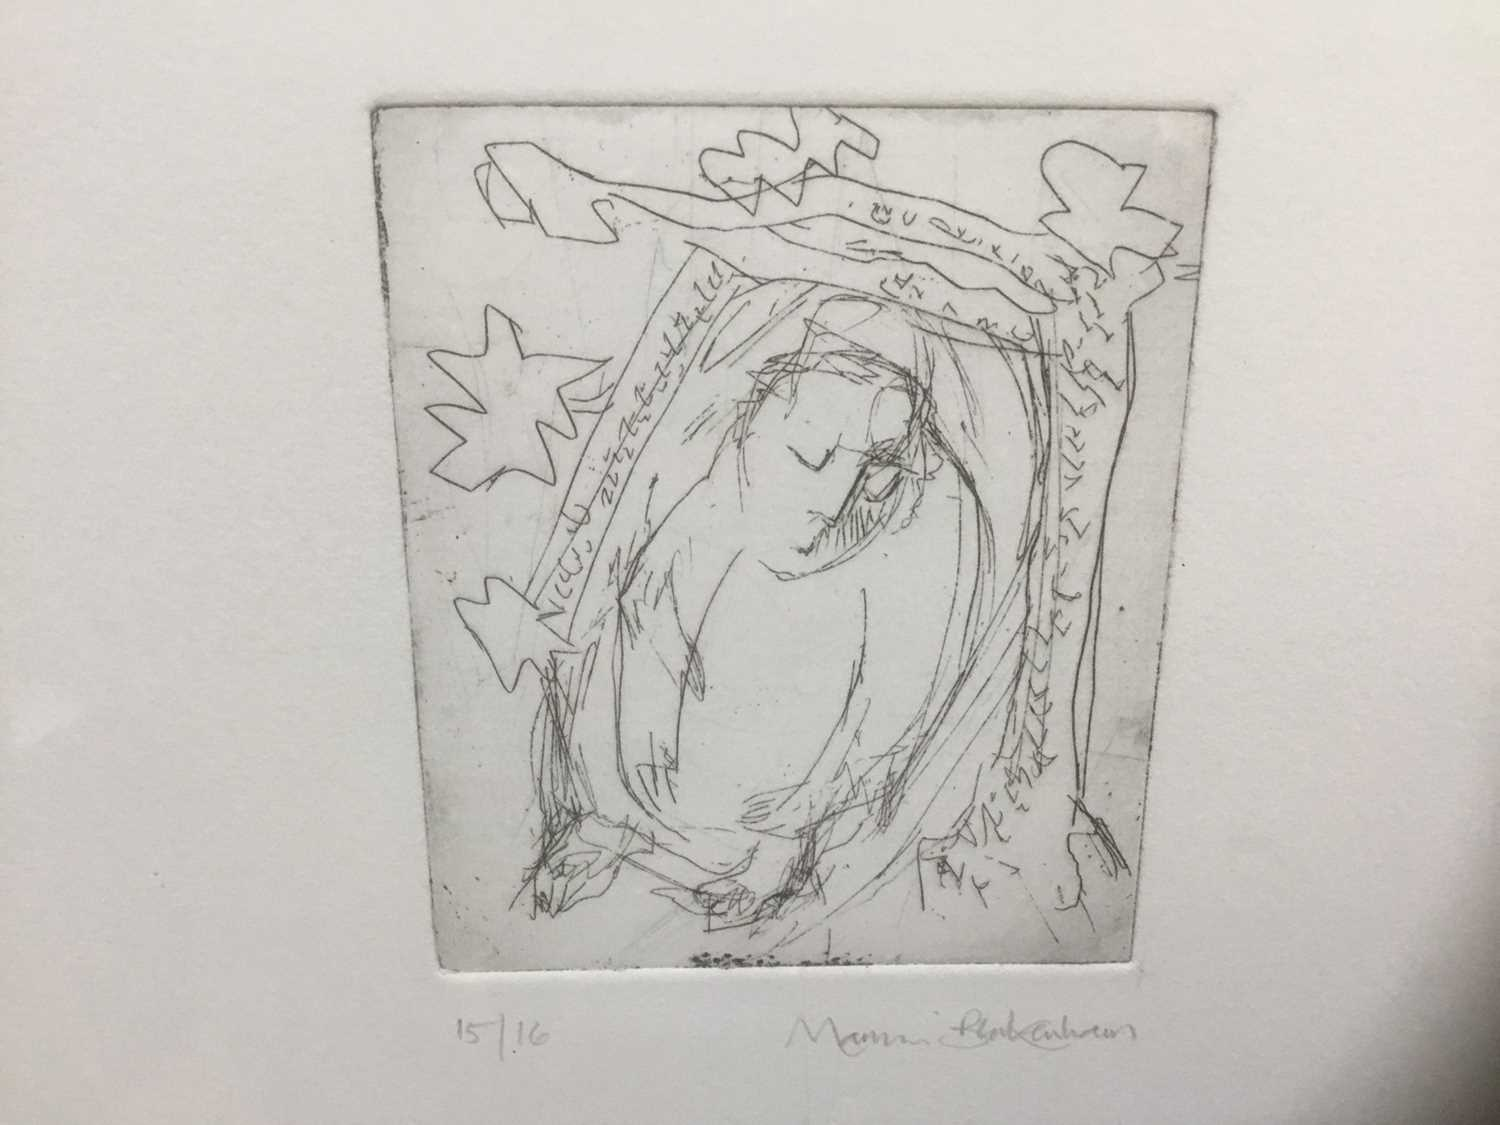 Marcia Blakenham (b. 1946), two signed etchings - figures, one numbered 15/16, in glazed frames